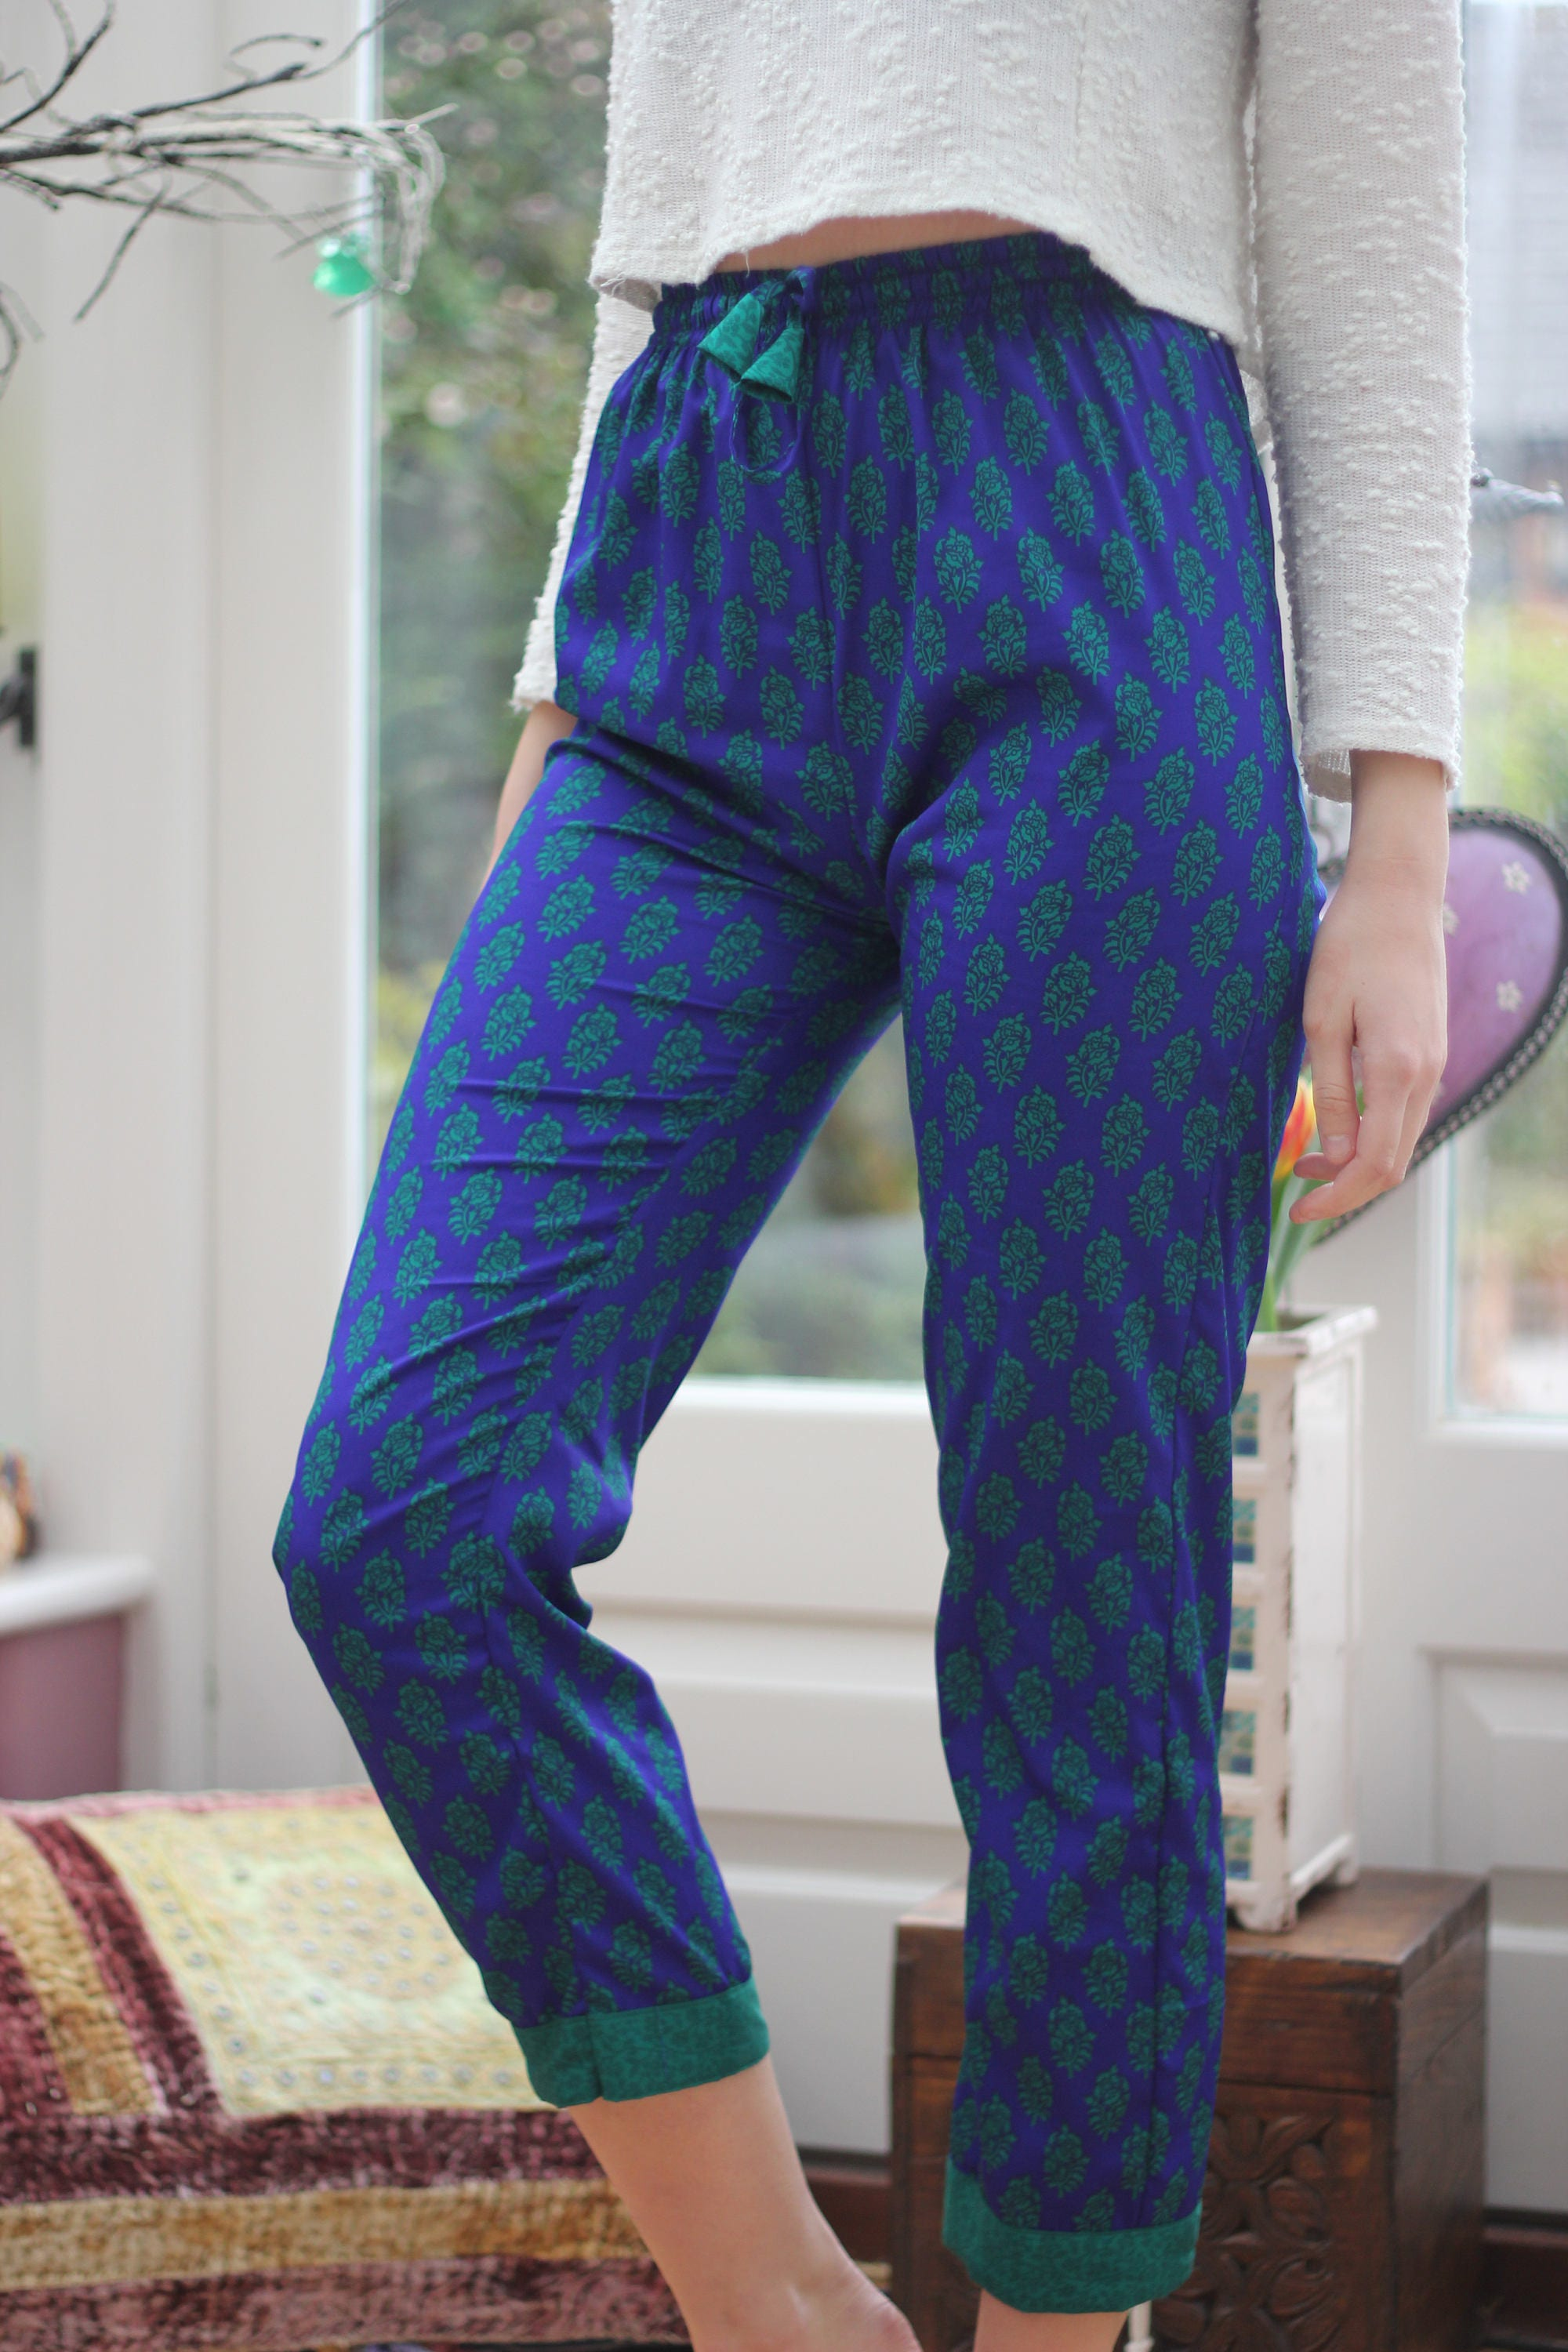 Vintage Trousers  Yoga Trousers  High waisted Pyjamas  Hippie Trousers  Travel  Festival Trousers  Cigarette Trousers  Gifts for her